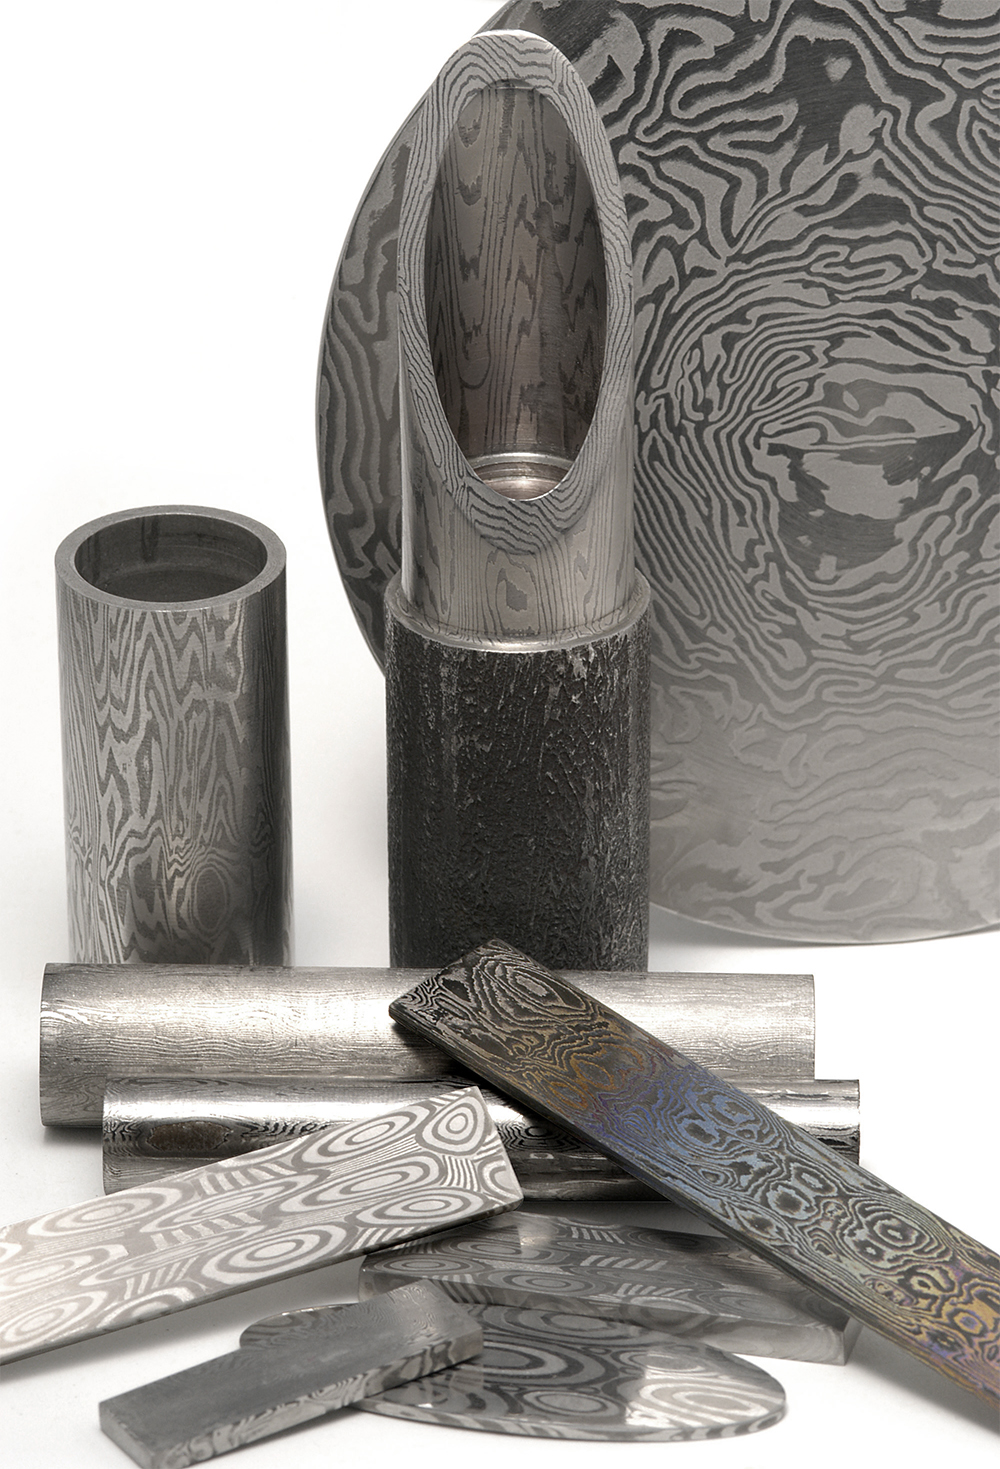 Material Created by Our Groundbreaking Patterned Metal Process